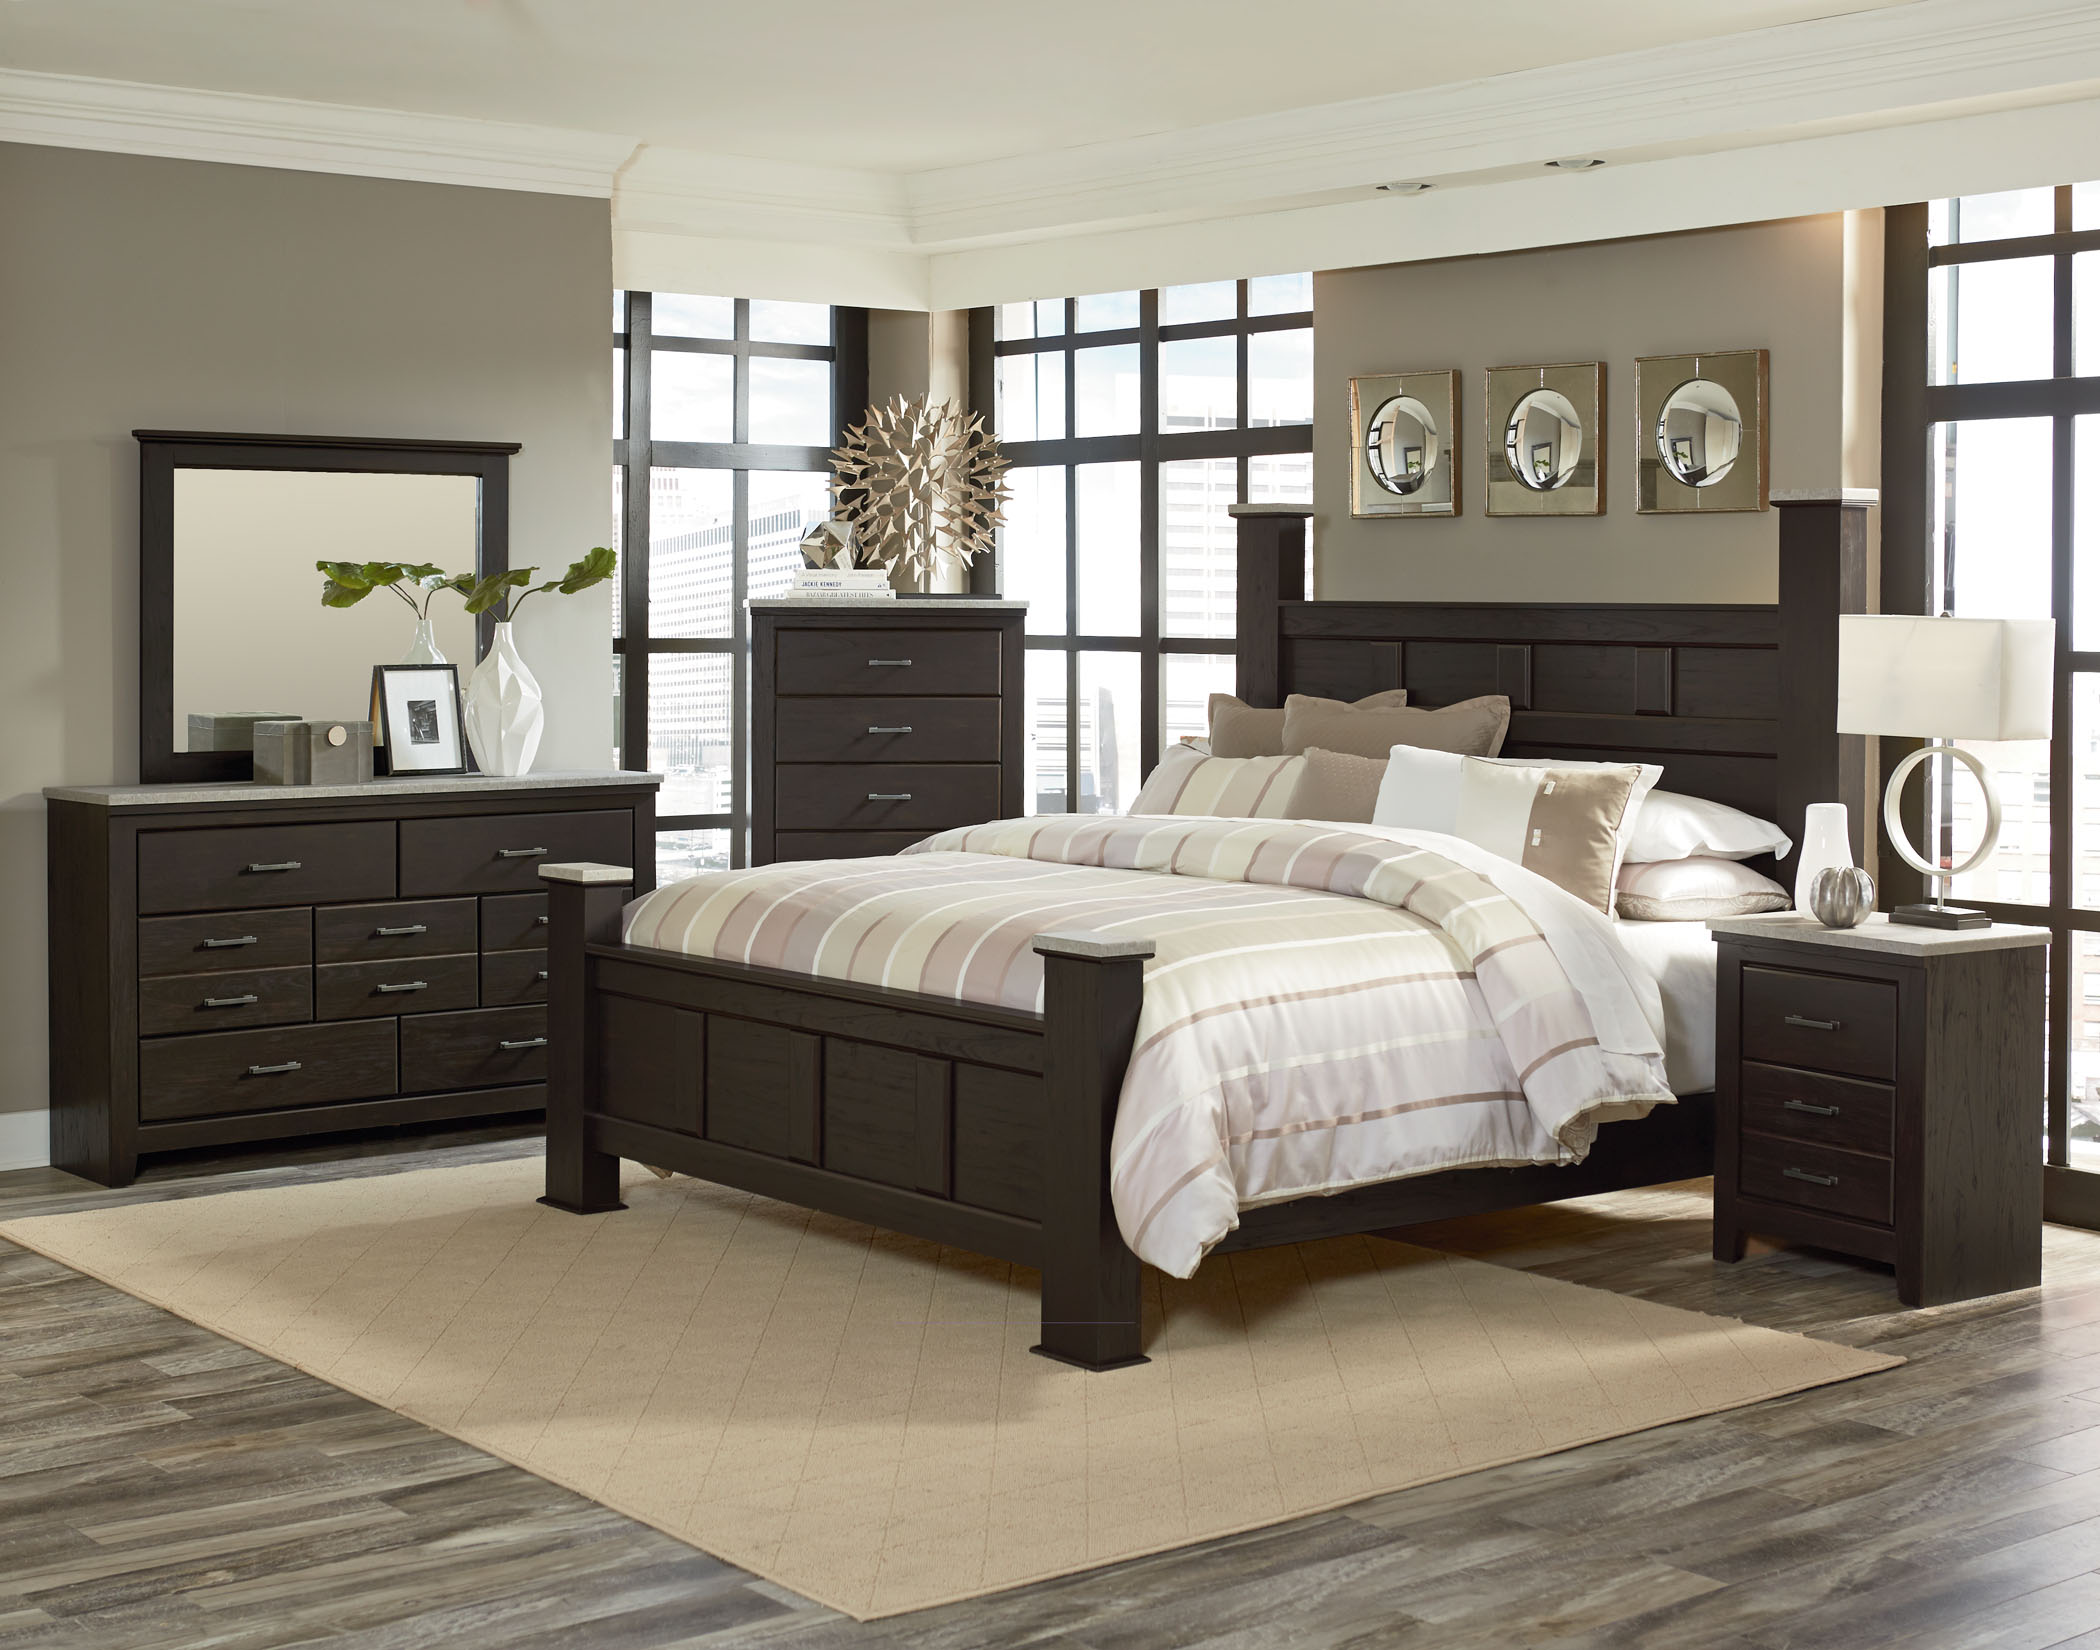 discount furniture mattress outlet